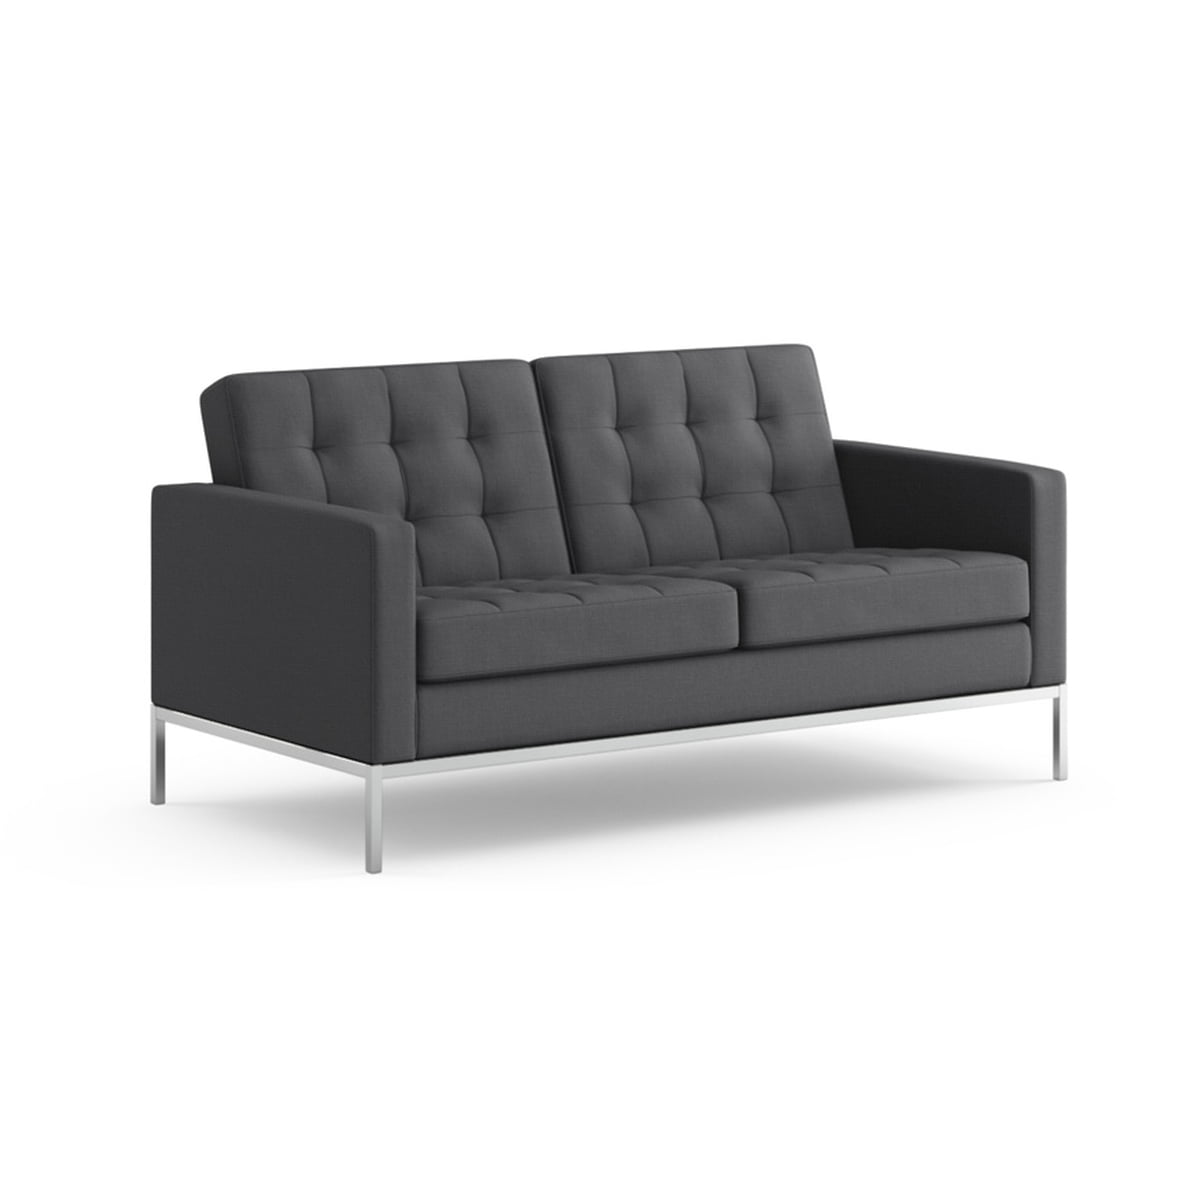 Knoll Florence 2 Seats Sofa In The